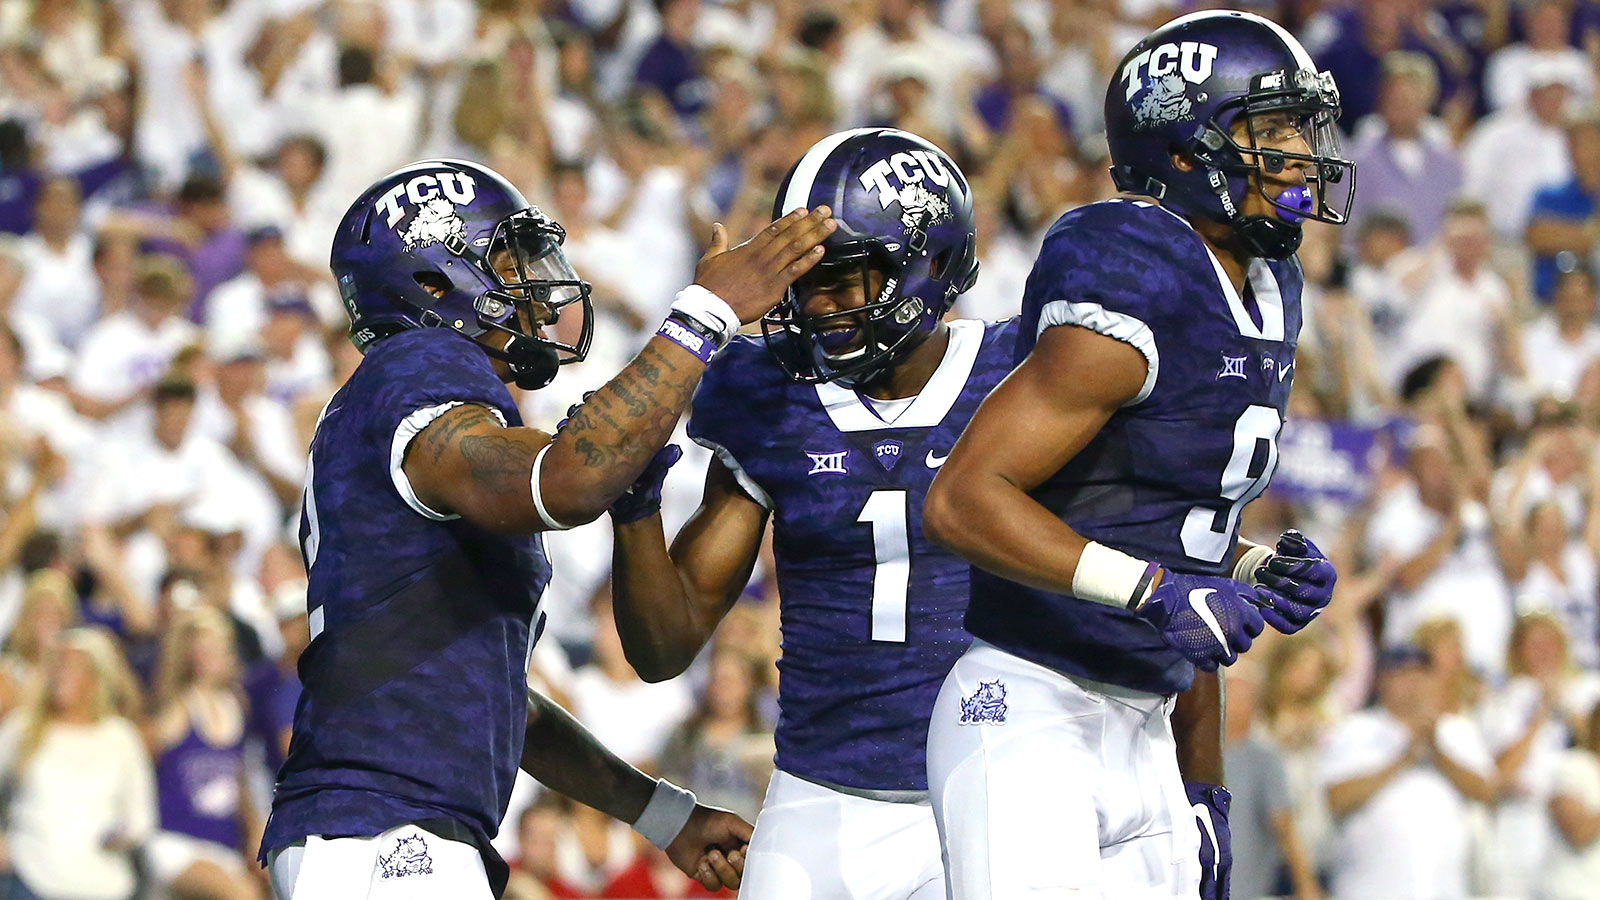 Tcu Is Only School In Nation With 2 Semifinalists For Maxwell Award Fox Sports